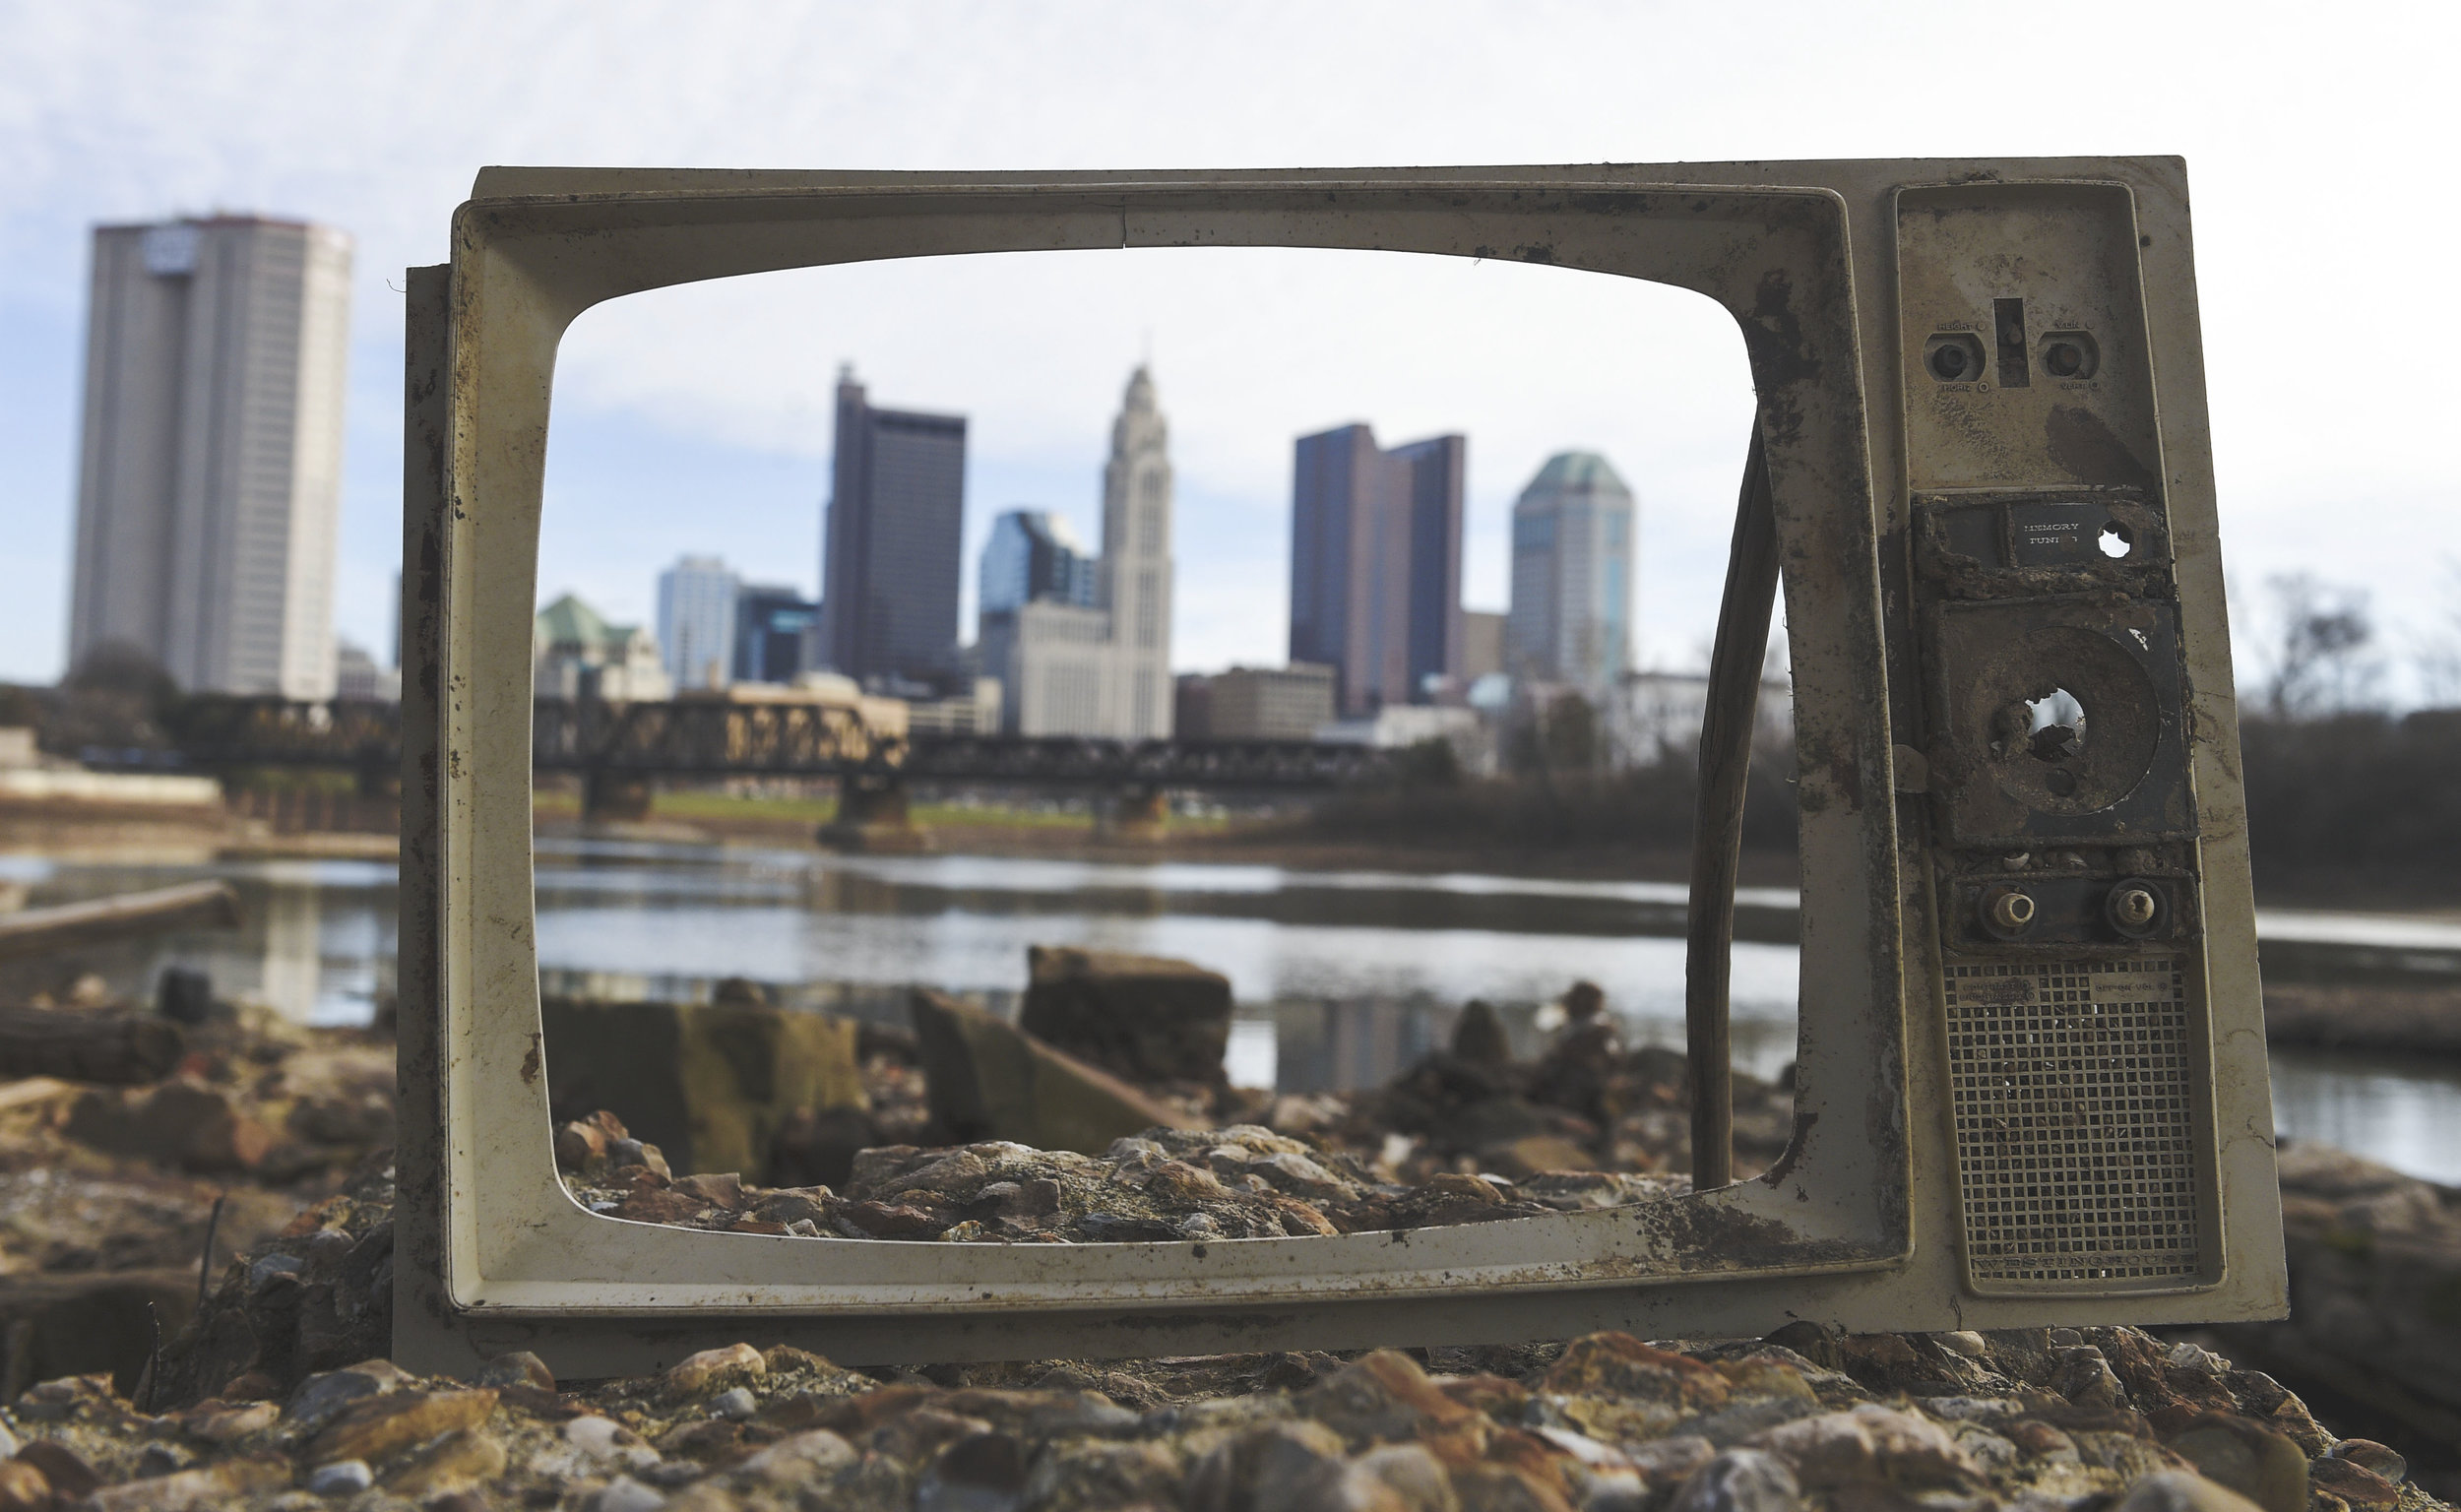 The downtown area of Columbus as seen through the remains of an old Television that was propped up on a rock on the eastern shore of the Scioto River.